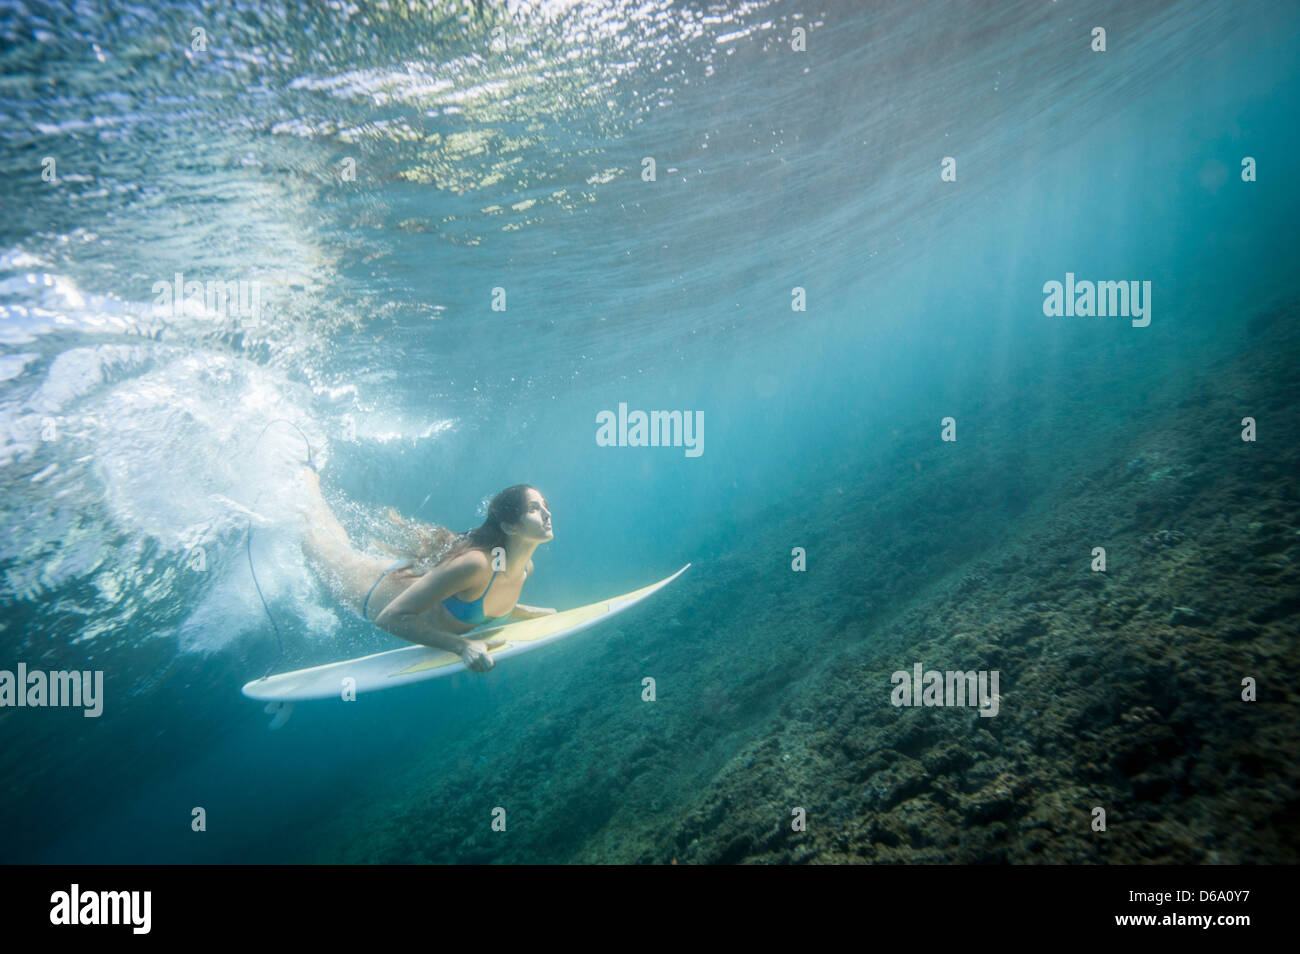 Surfer diving under wave in water - Stock Image